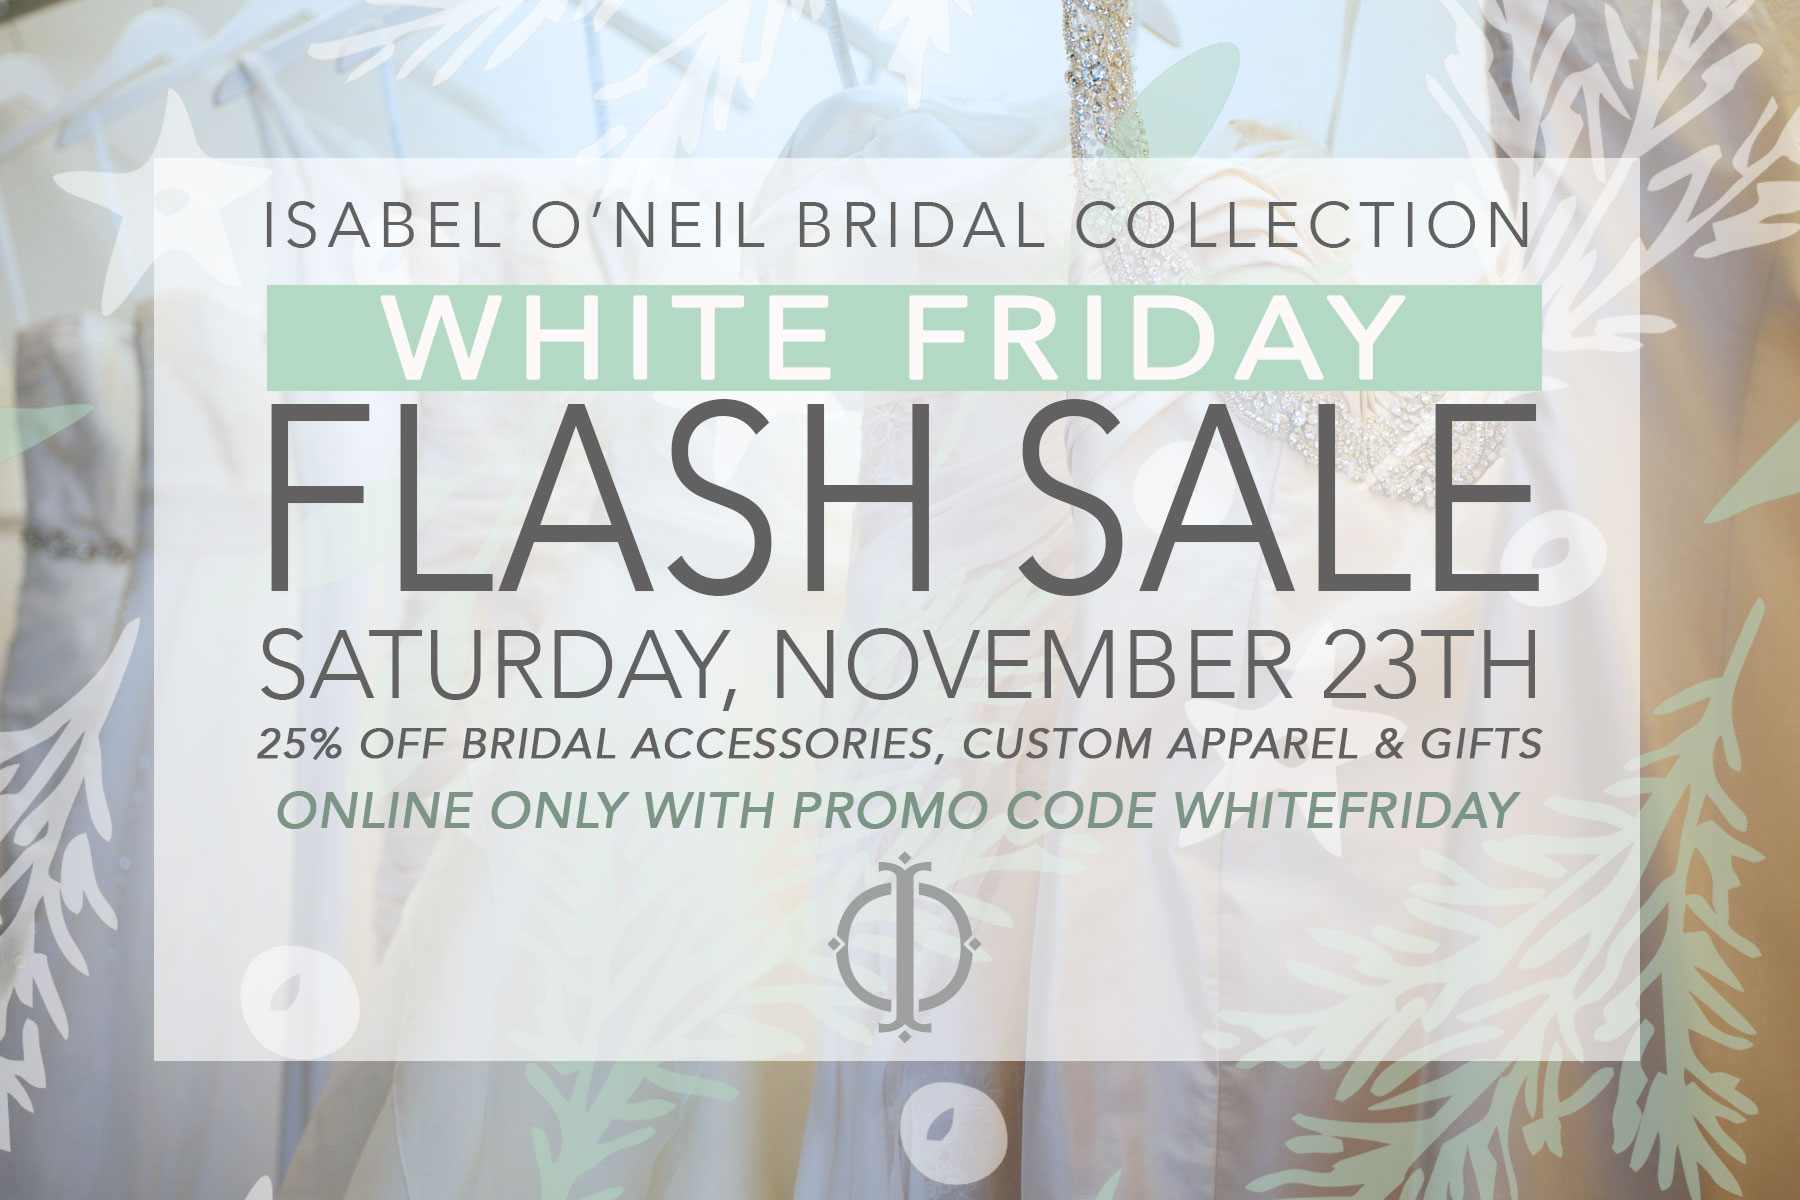 Black-Friday-Flash-Sale-11.2018.jpg